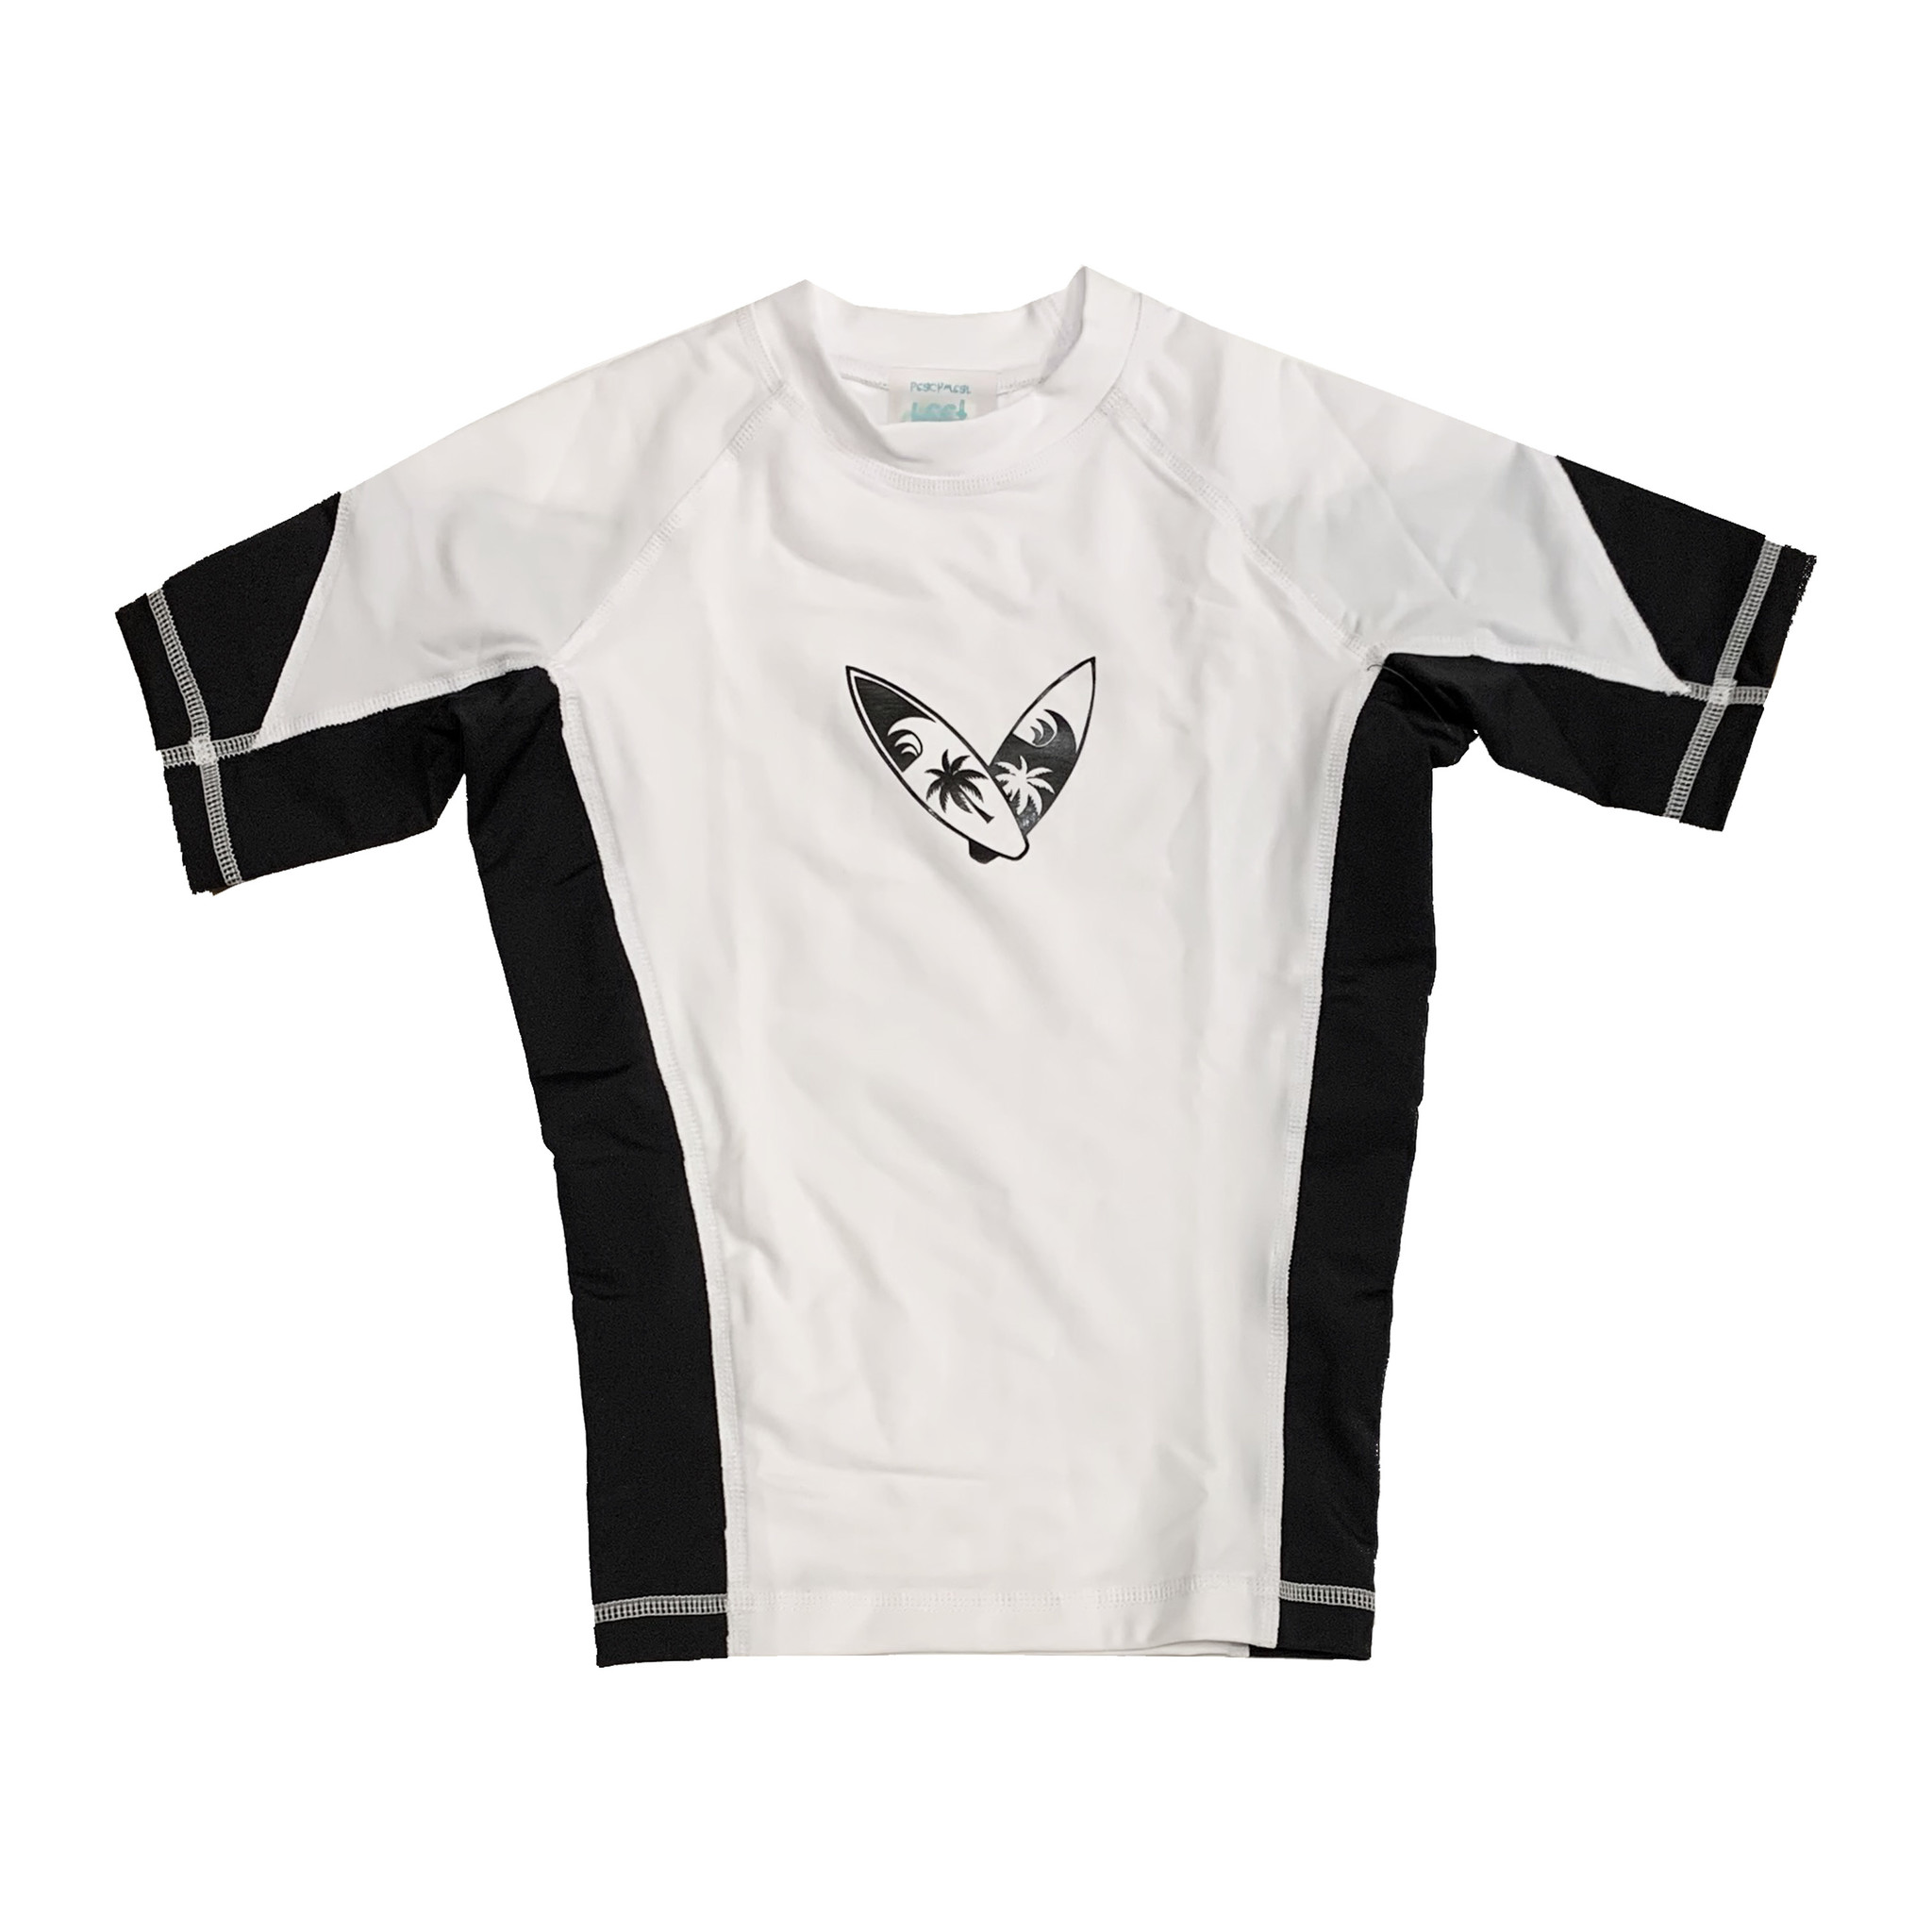 Coral Reef Black & White Surfboard Rashguard